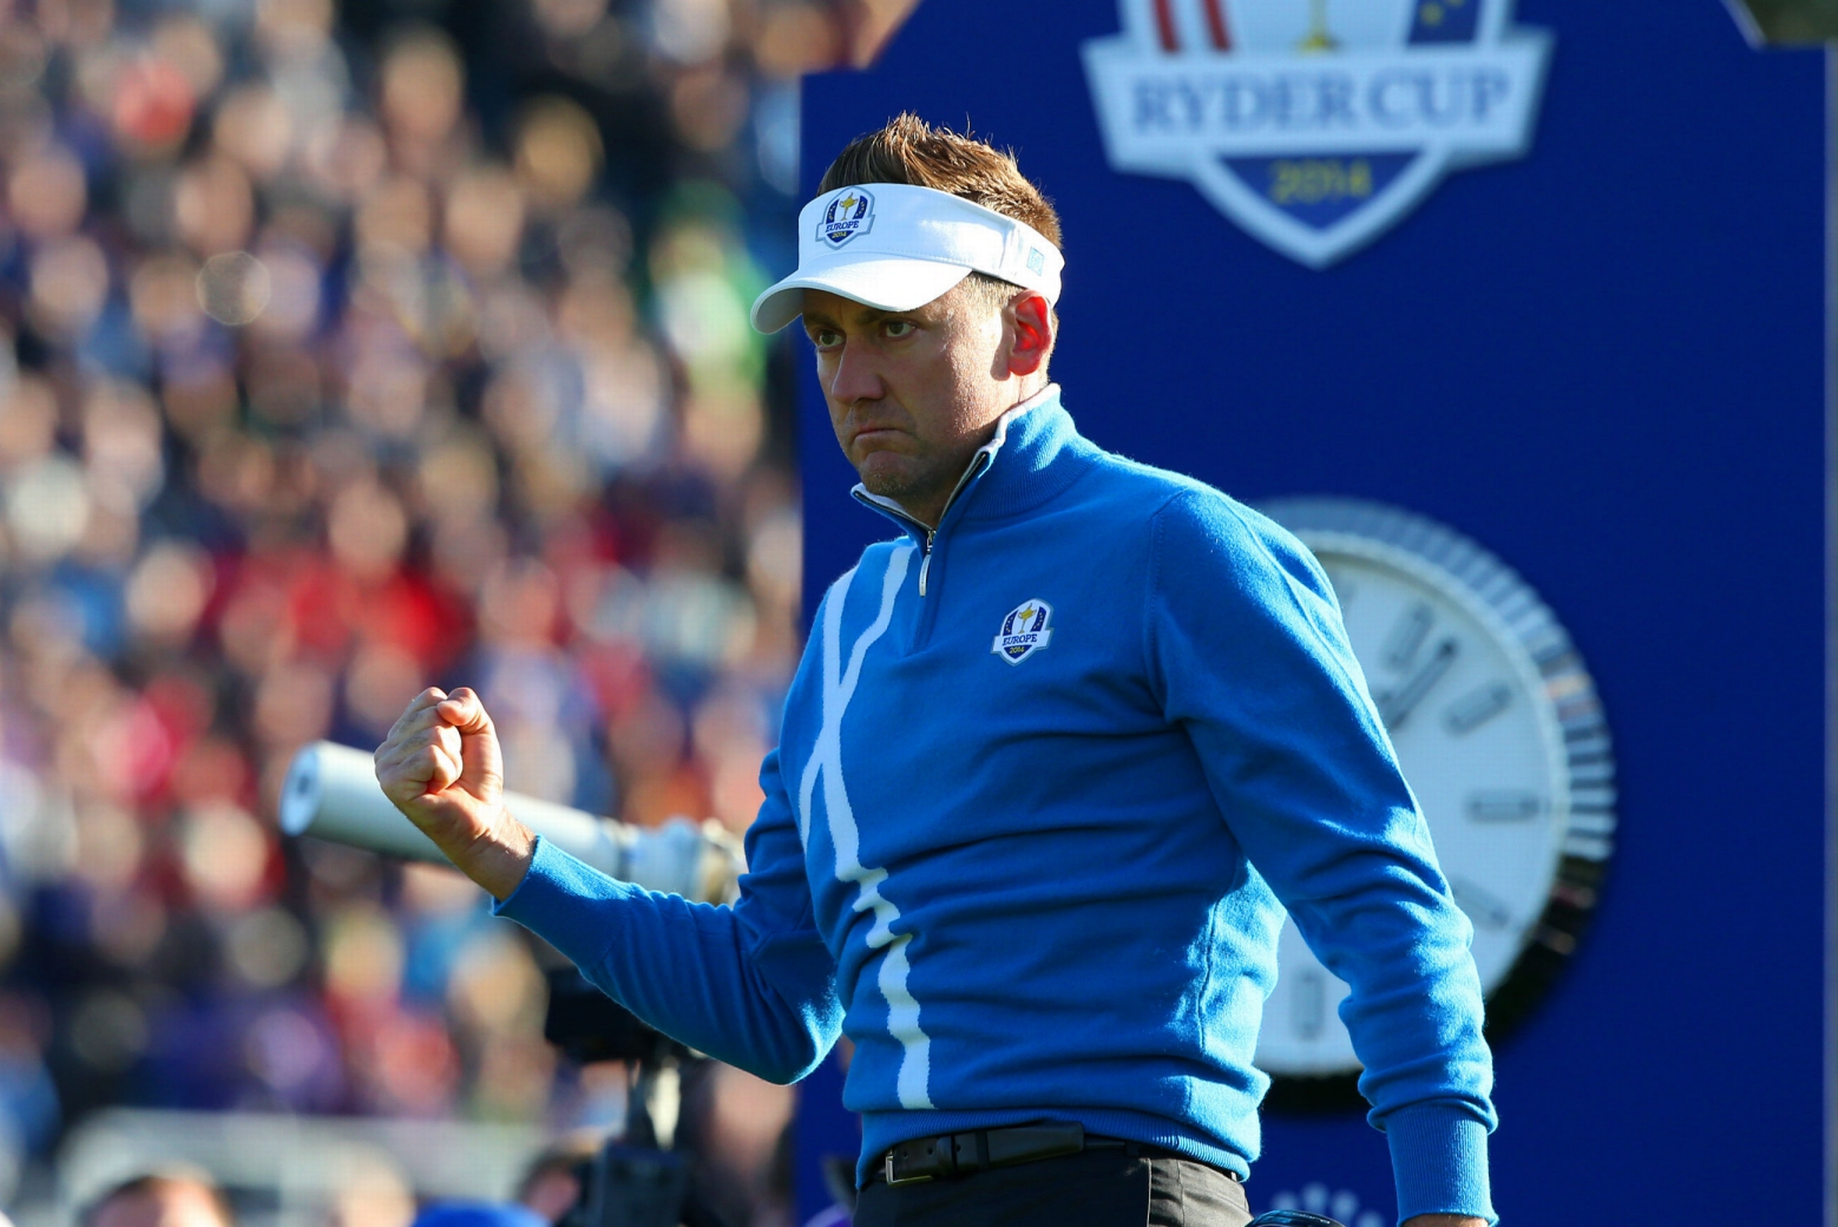 Ryder Cup Day One LIVE All the action from Gleneagles